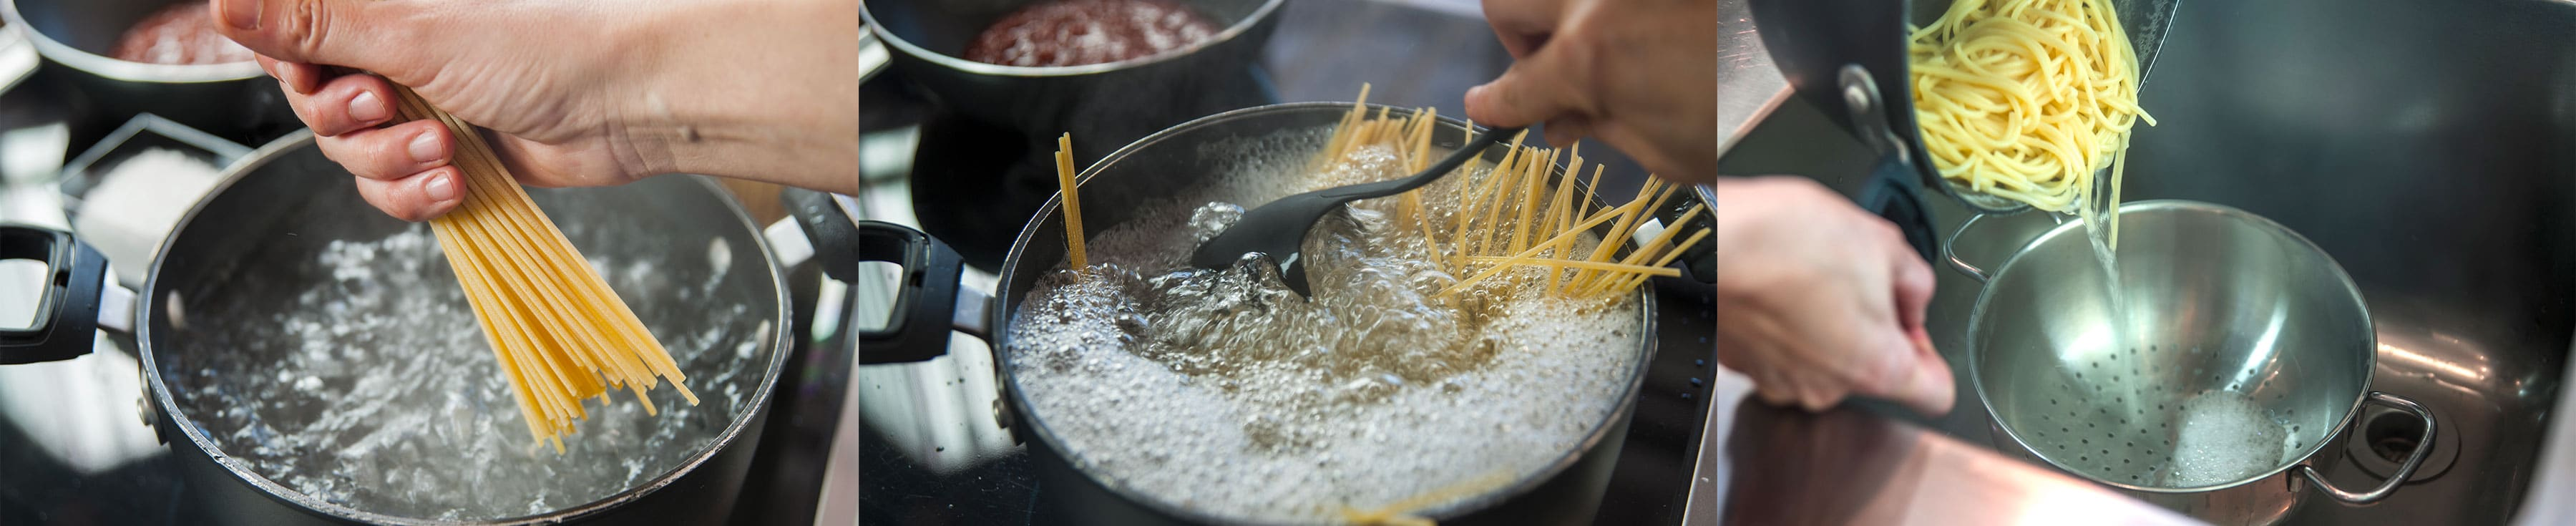 How to make Pasta steps